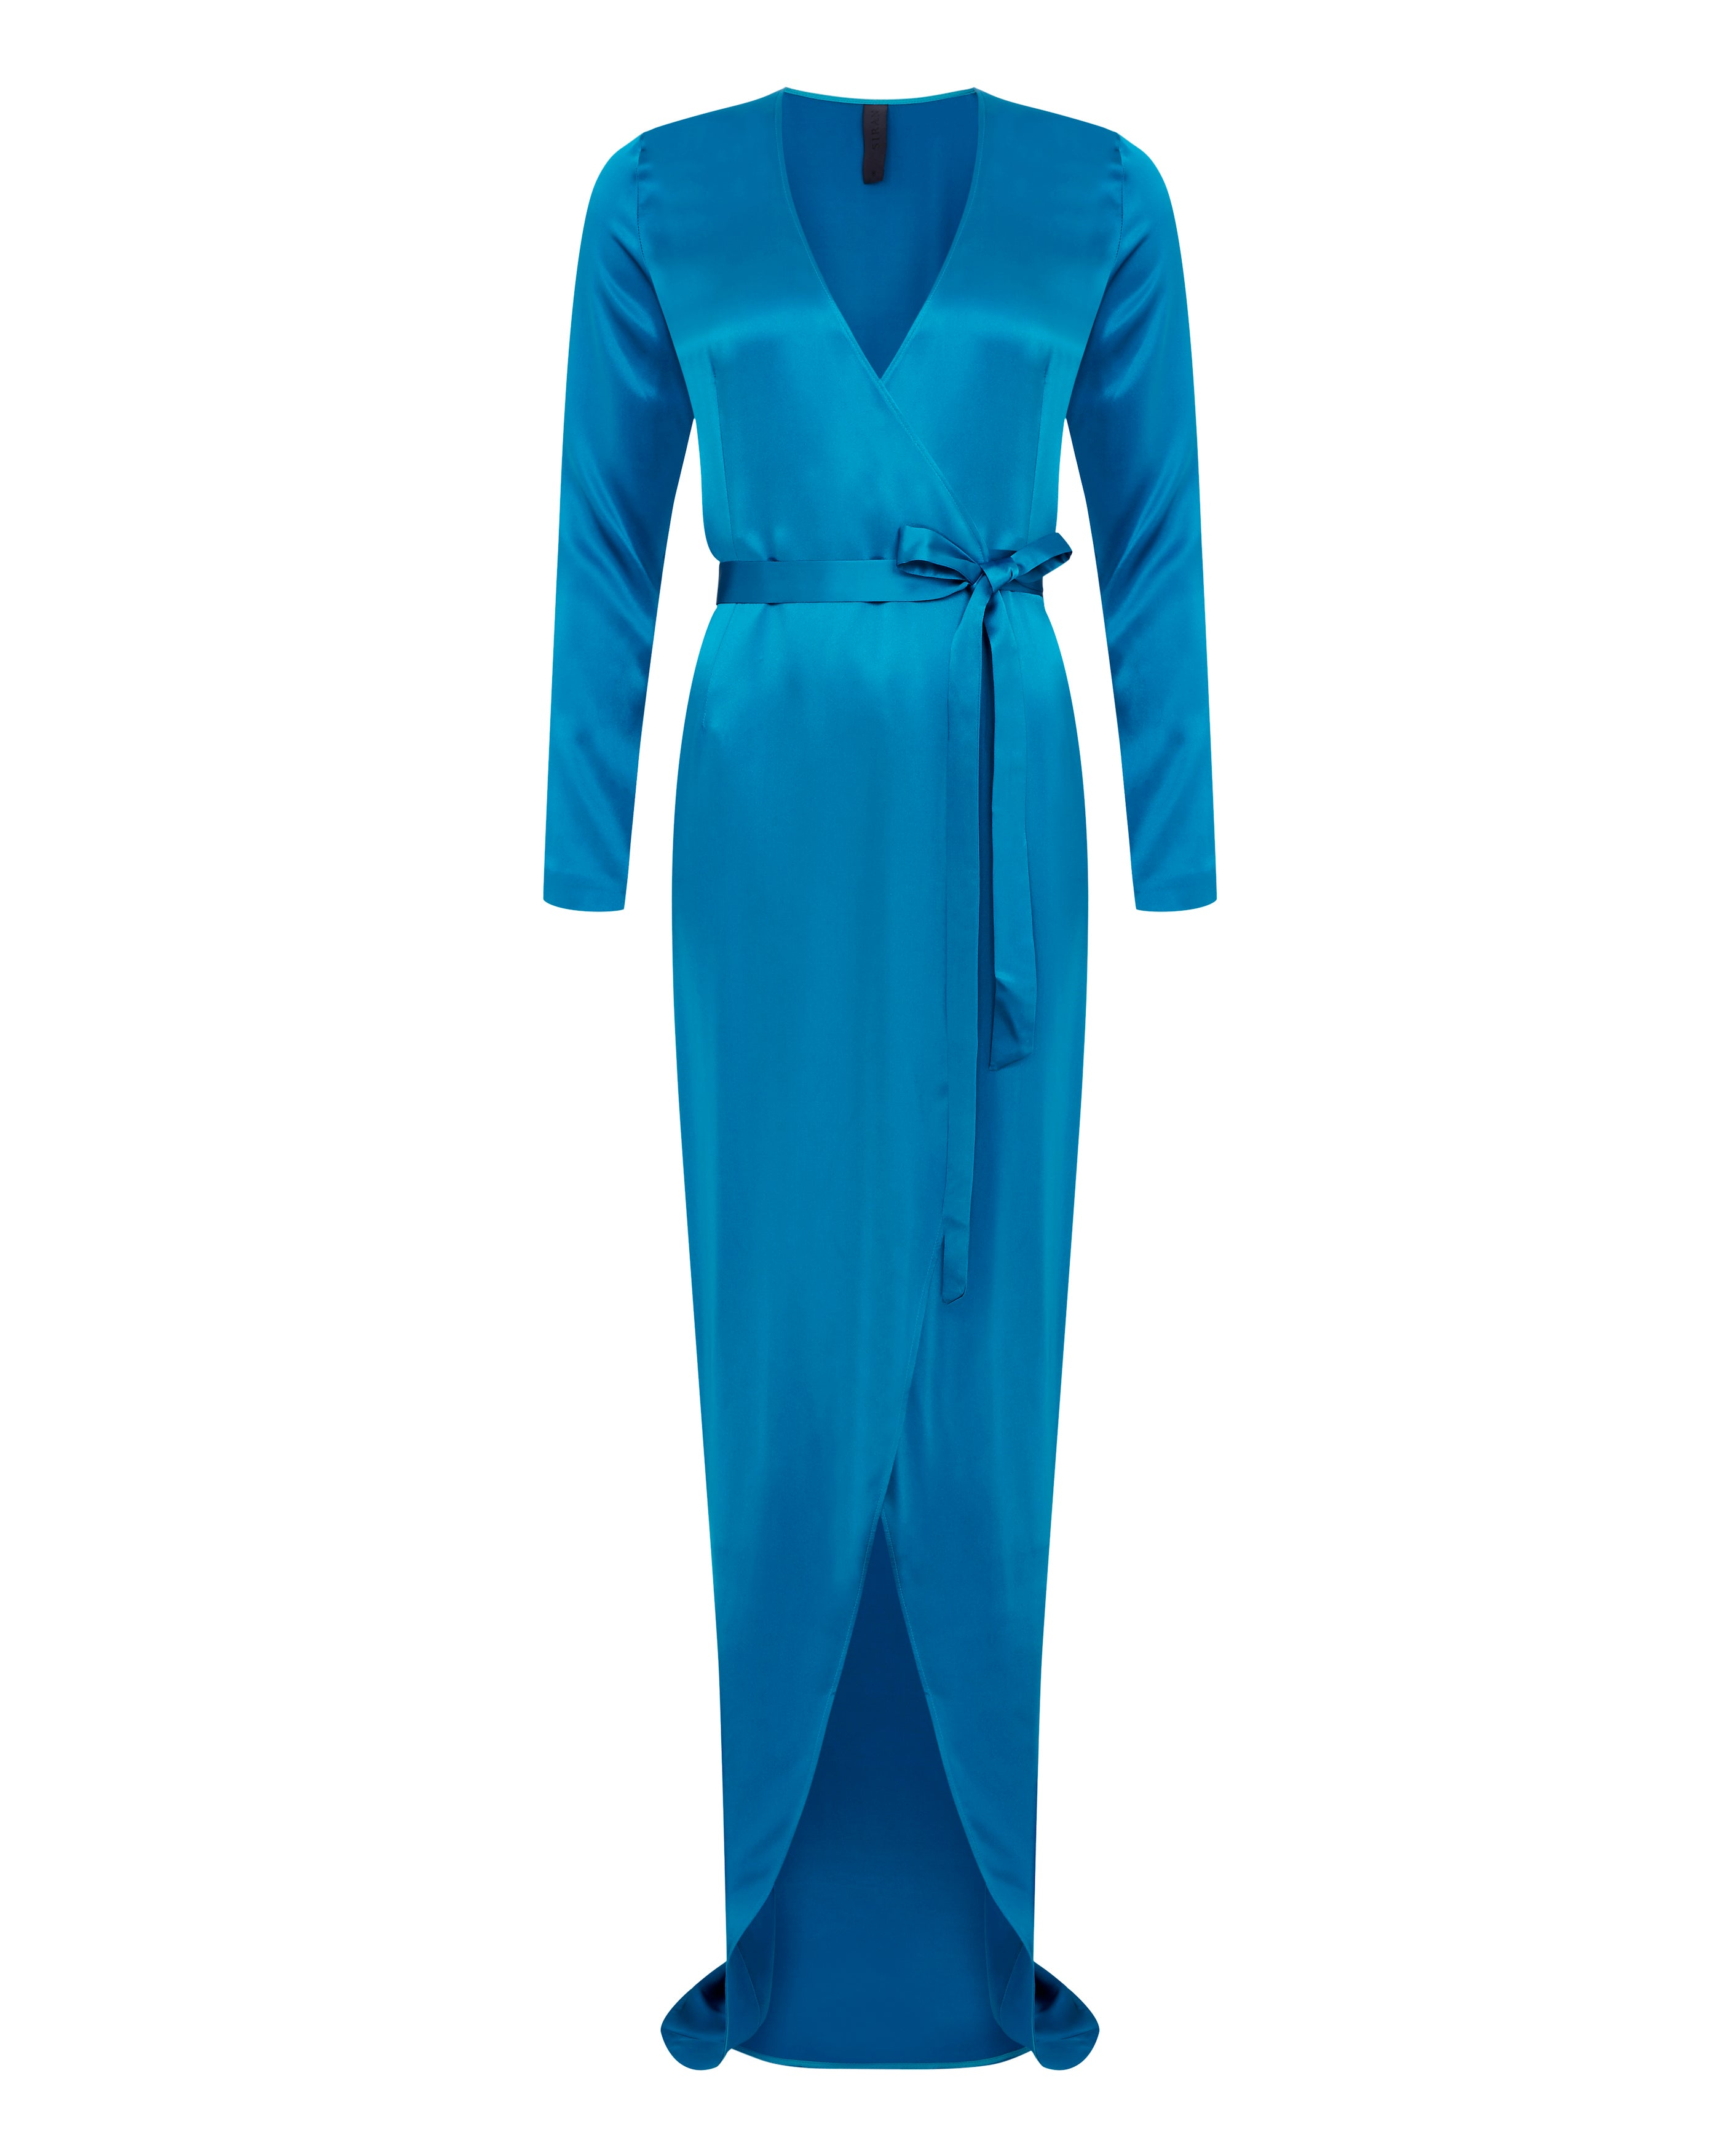 Wrap Dress - Teal Peacock